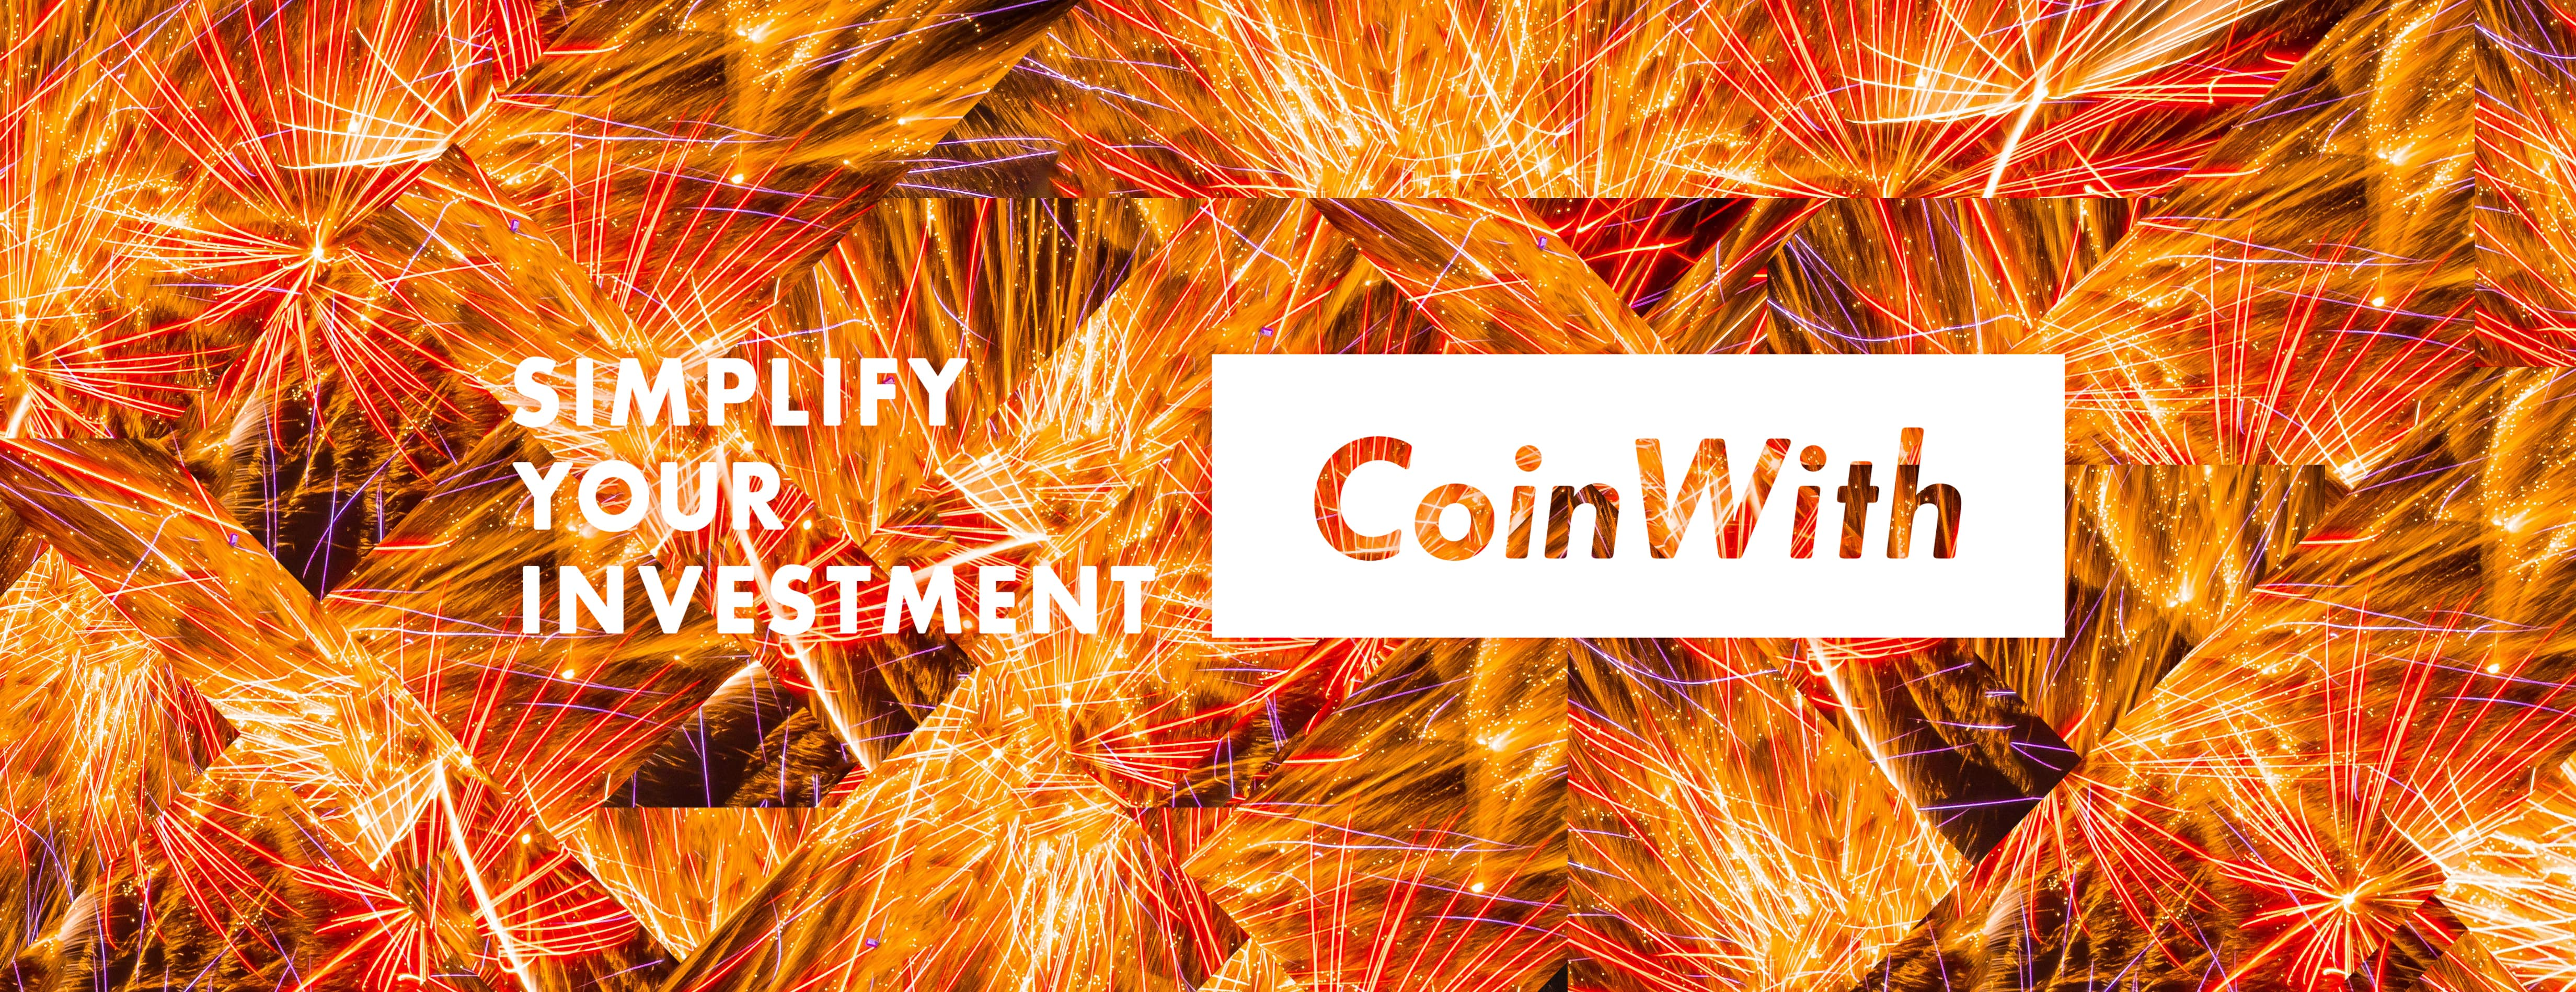 CoinWith / SIMPLE YOUR INVESTMENT